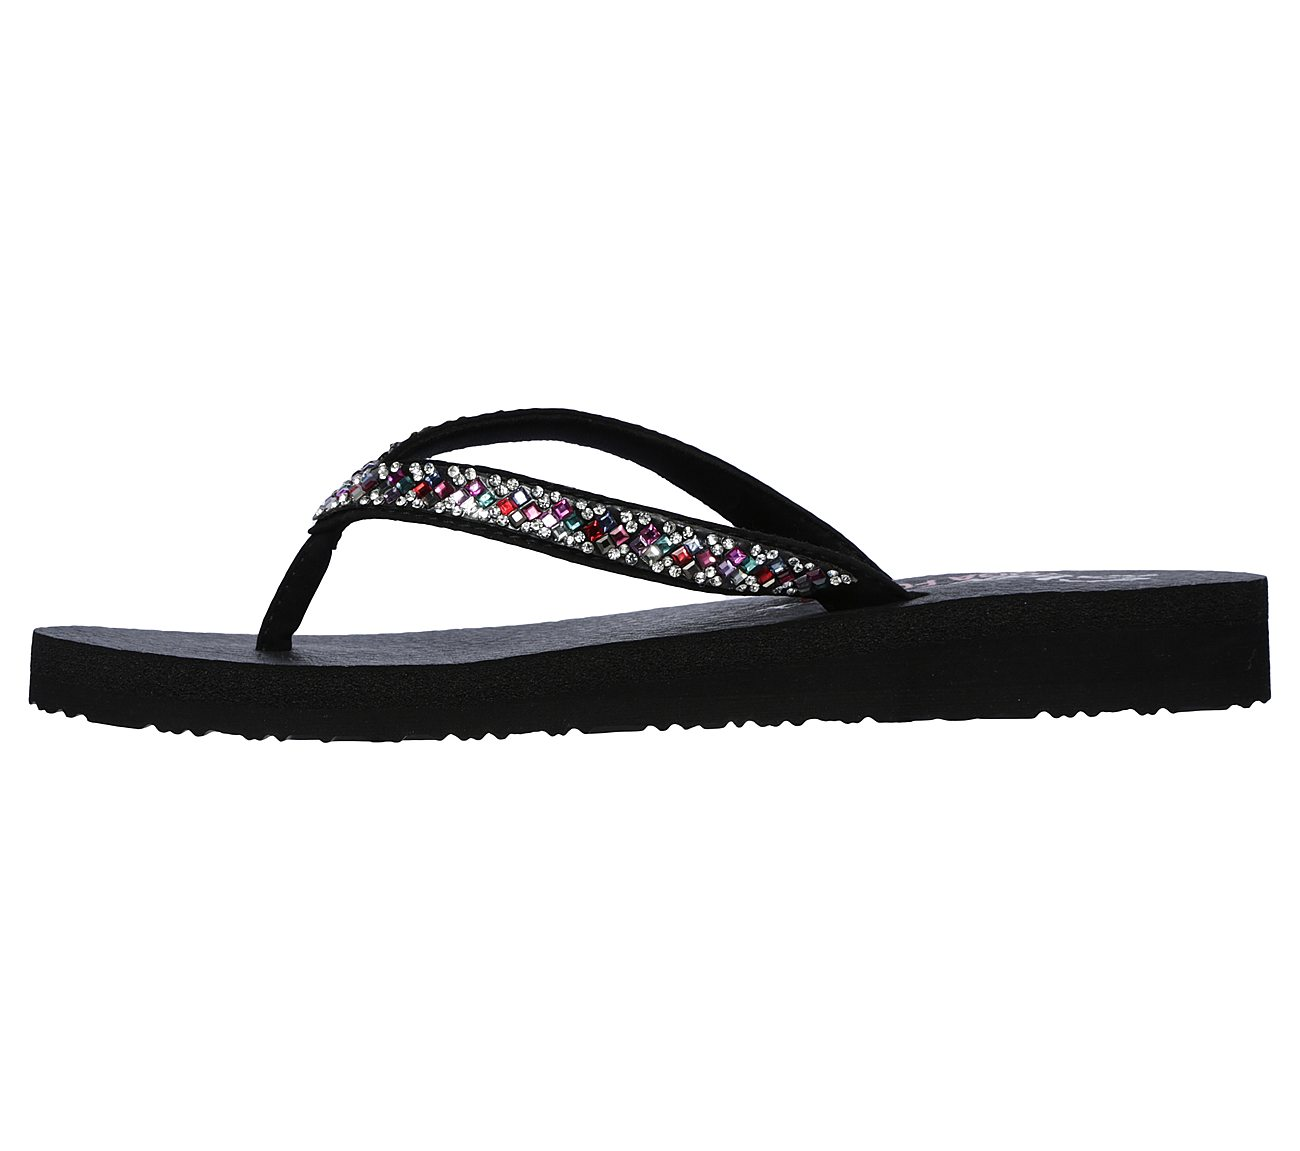 6a093d437 Buy SKECHERS Meditation - Perfect 10 SKECHERS Cali Shoes only £29.00